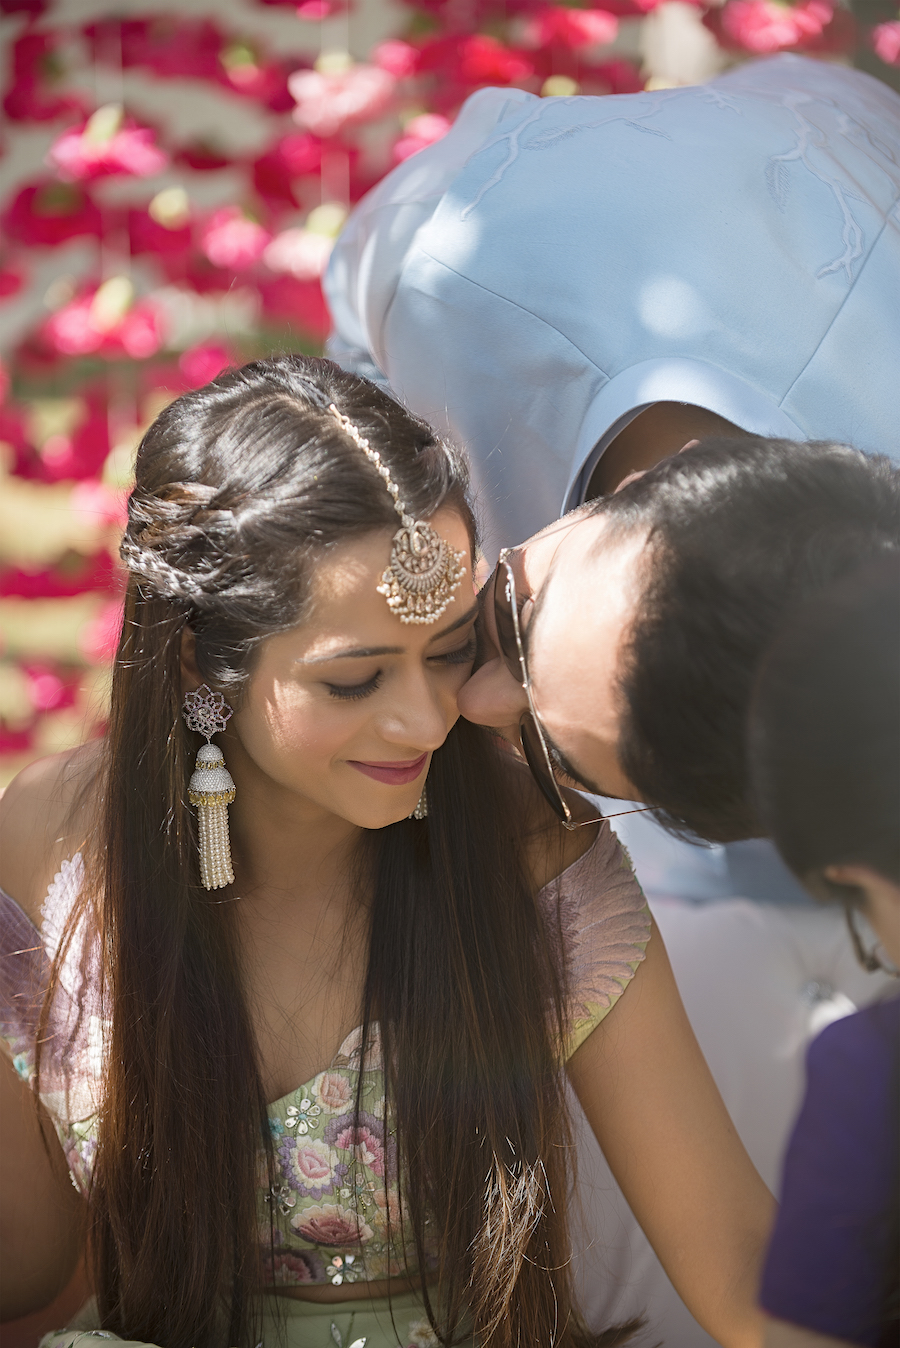 bride Kresha Bajaj on her Mehendi ceremony in silver and diamond maang tikka, customised floral chandelier earrings and middle parted hairstyle with twisty braids on the side